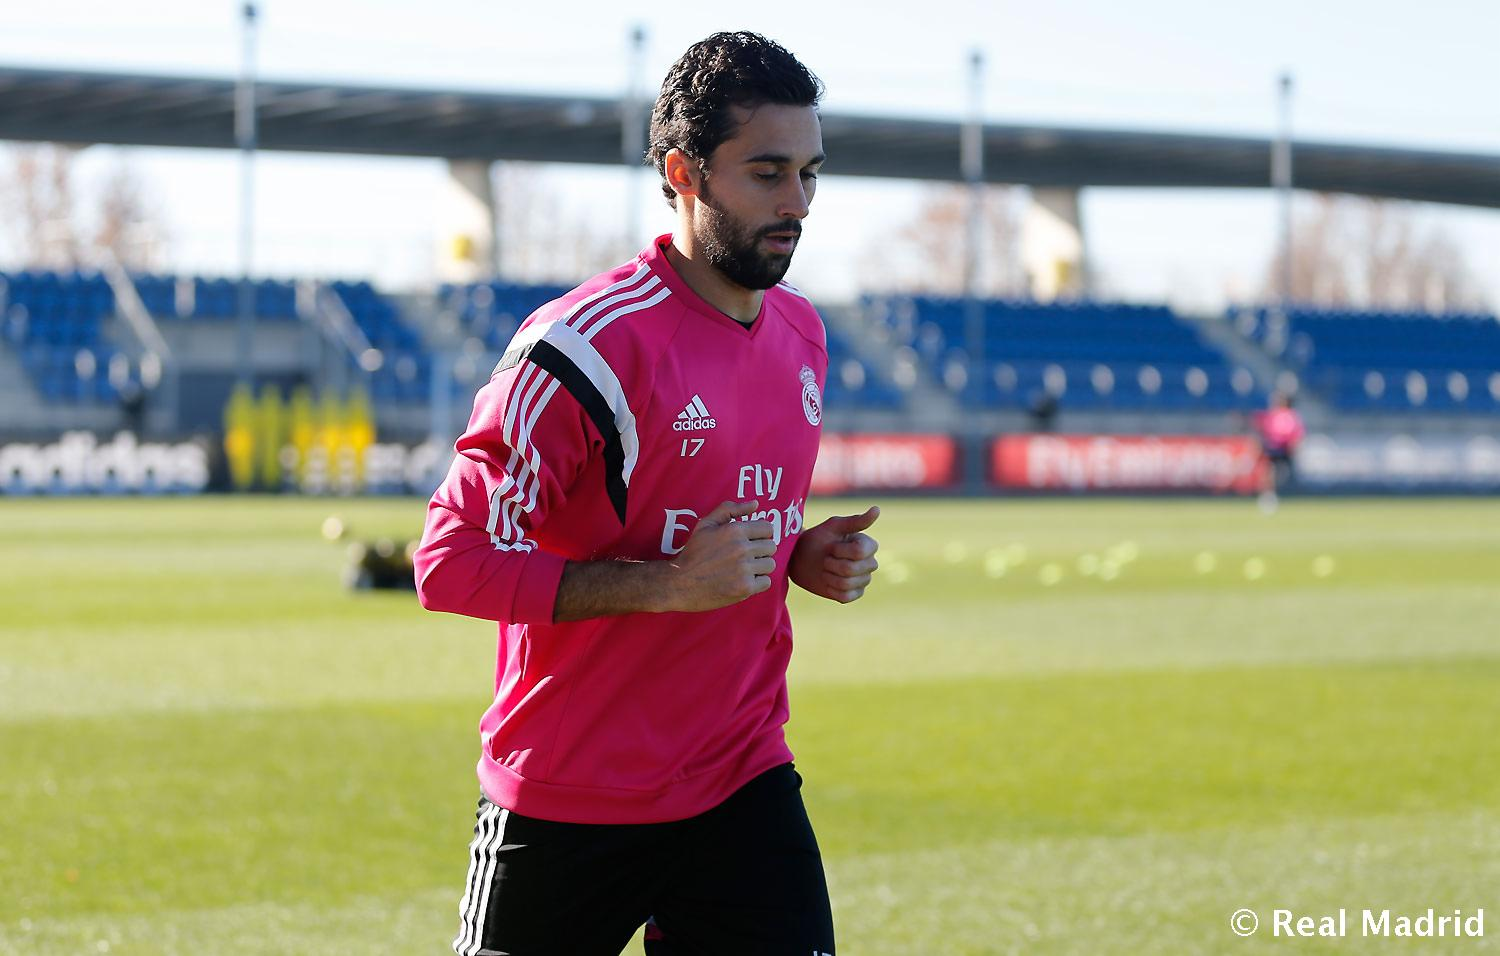 Real Madrid - Entrenamiento del Real Madrid - 31-12-2014